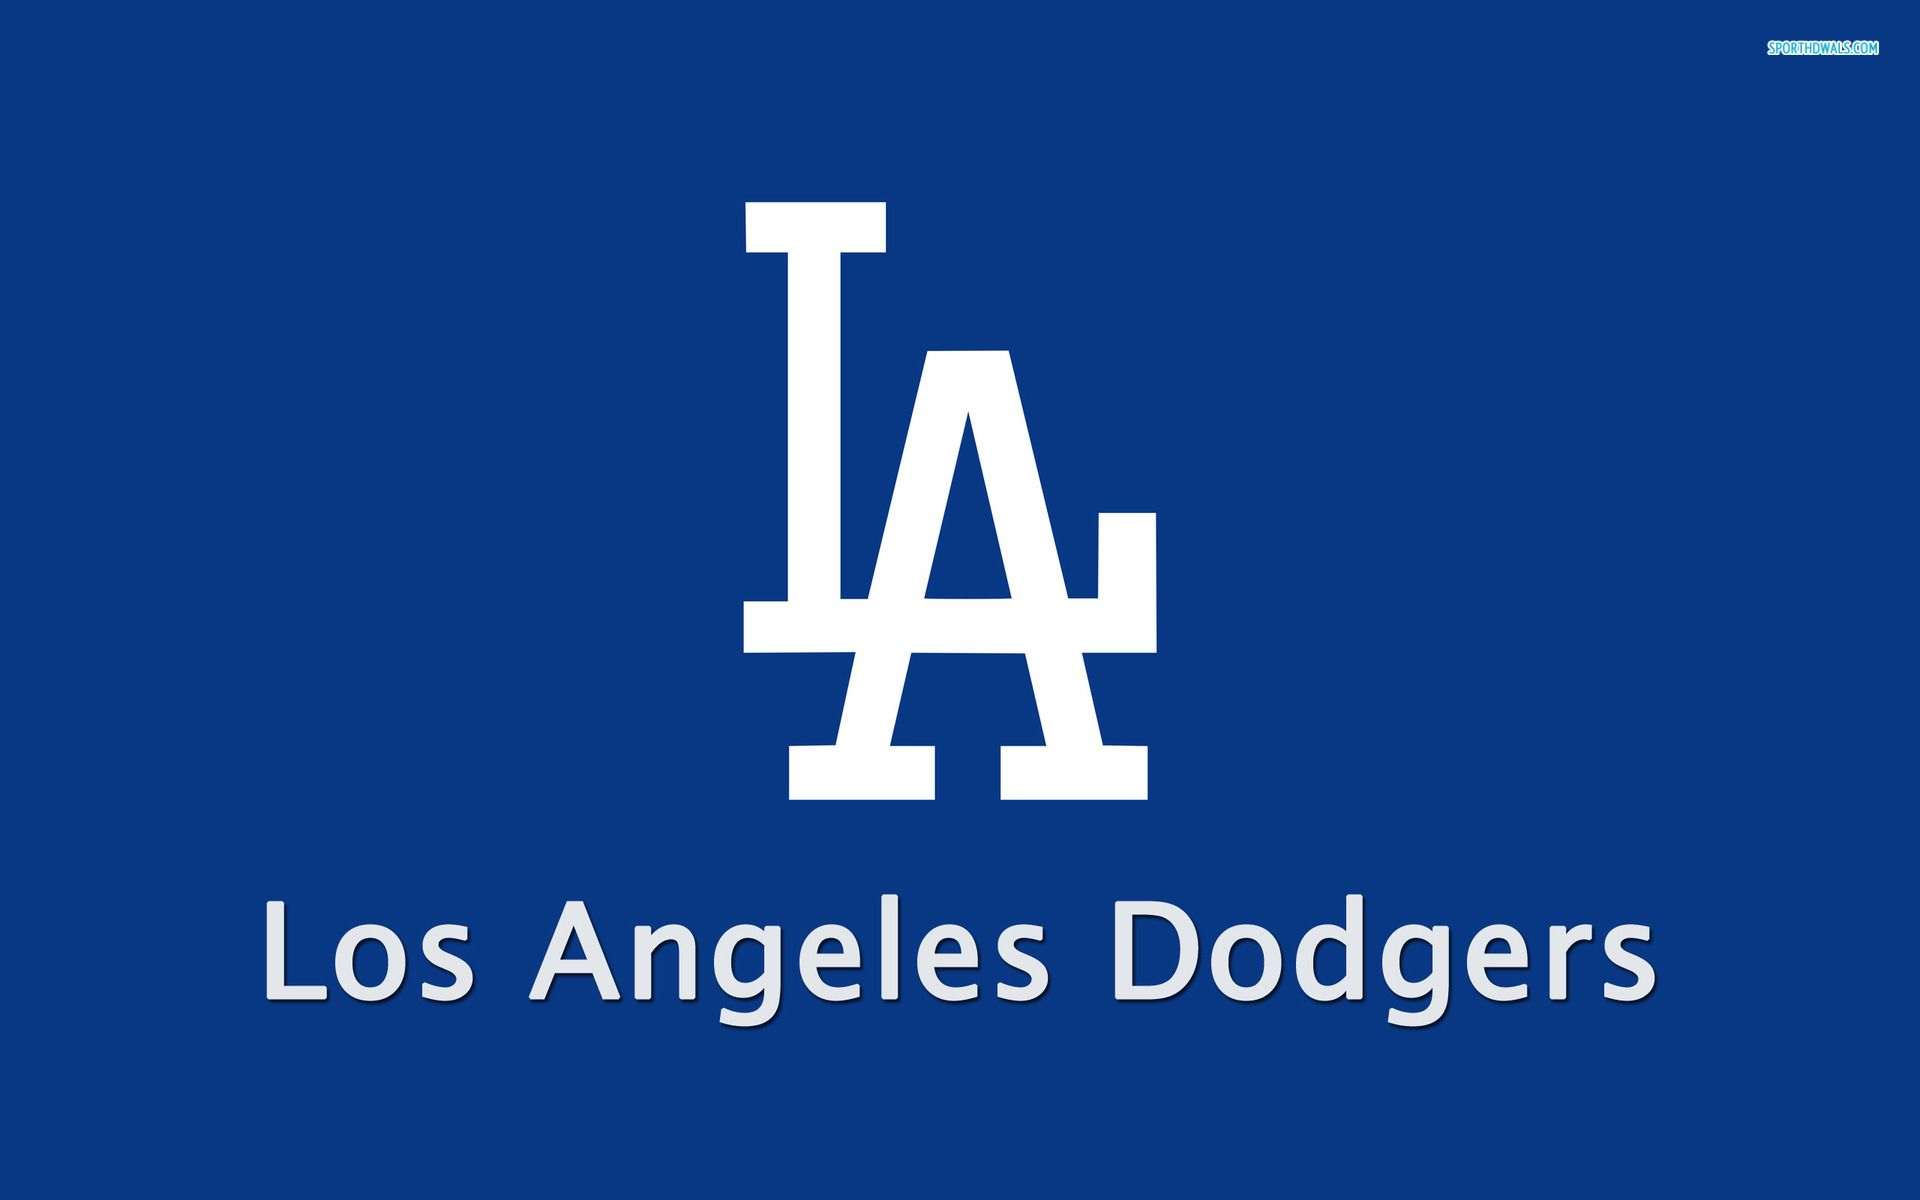 La Dodger Wallpaper